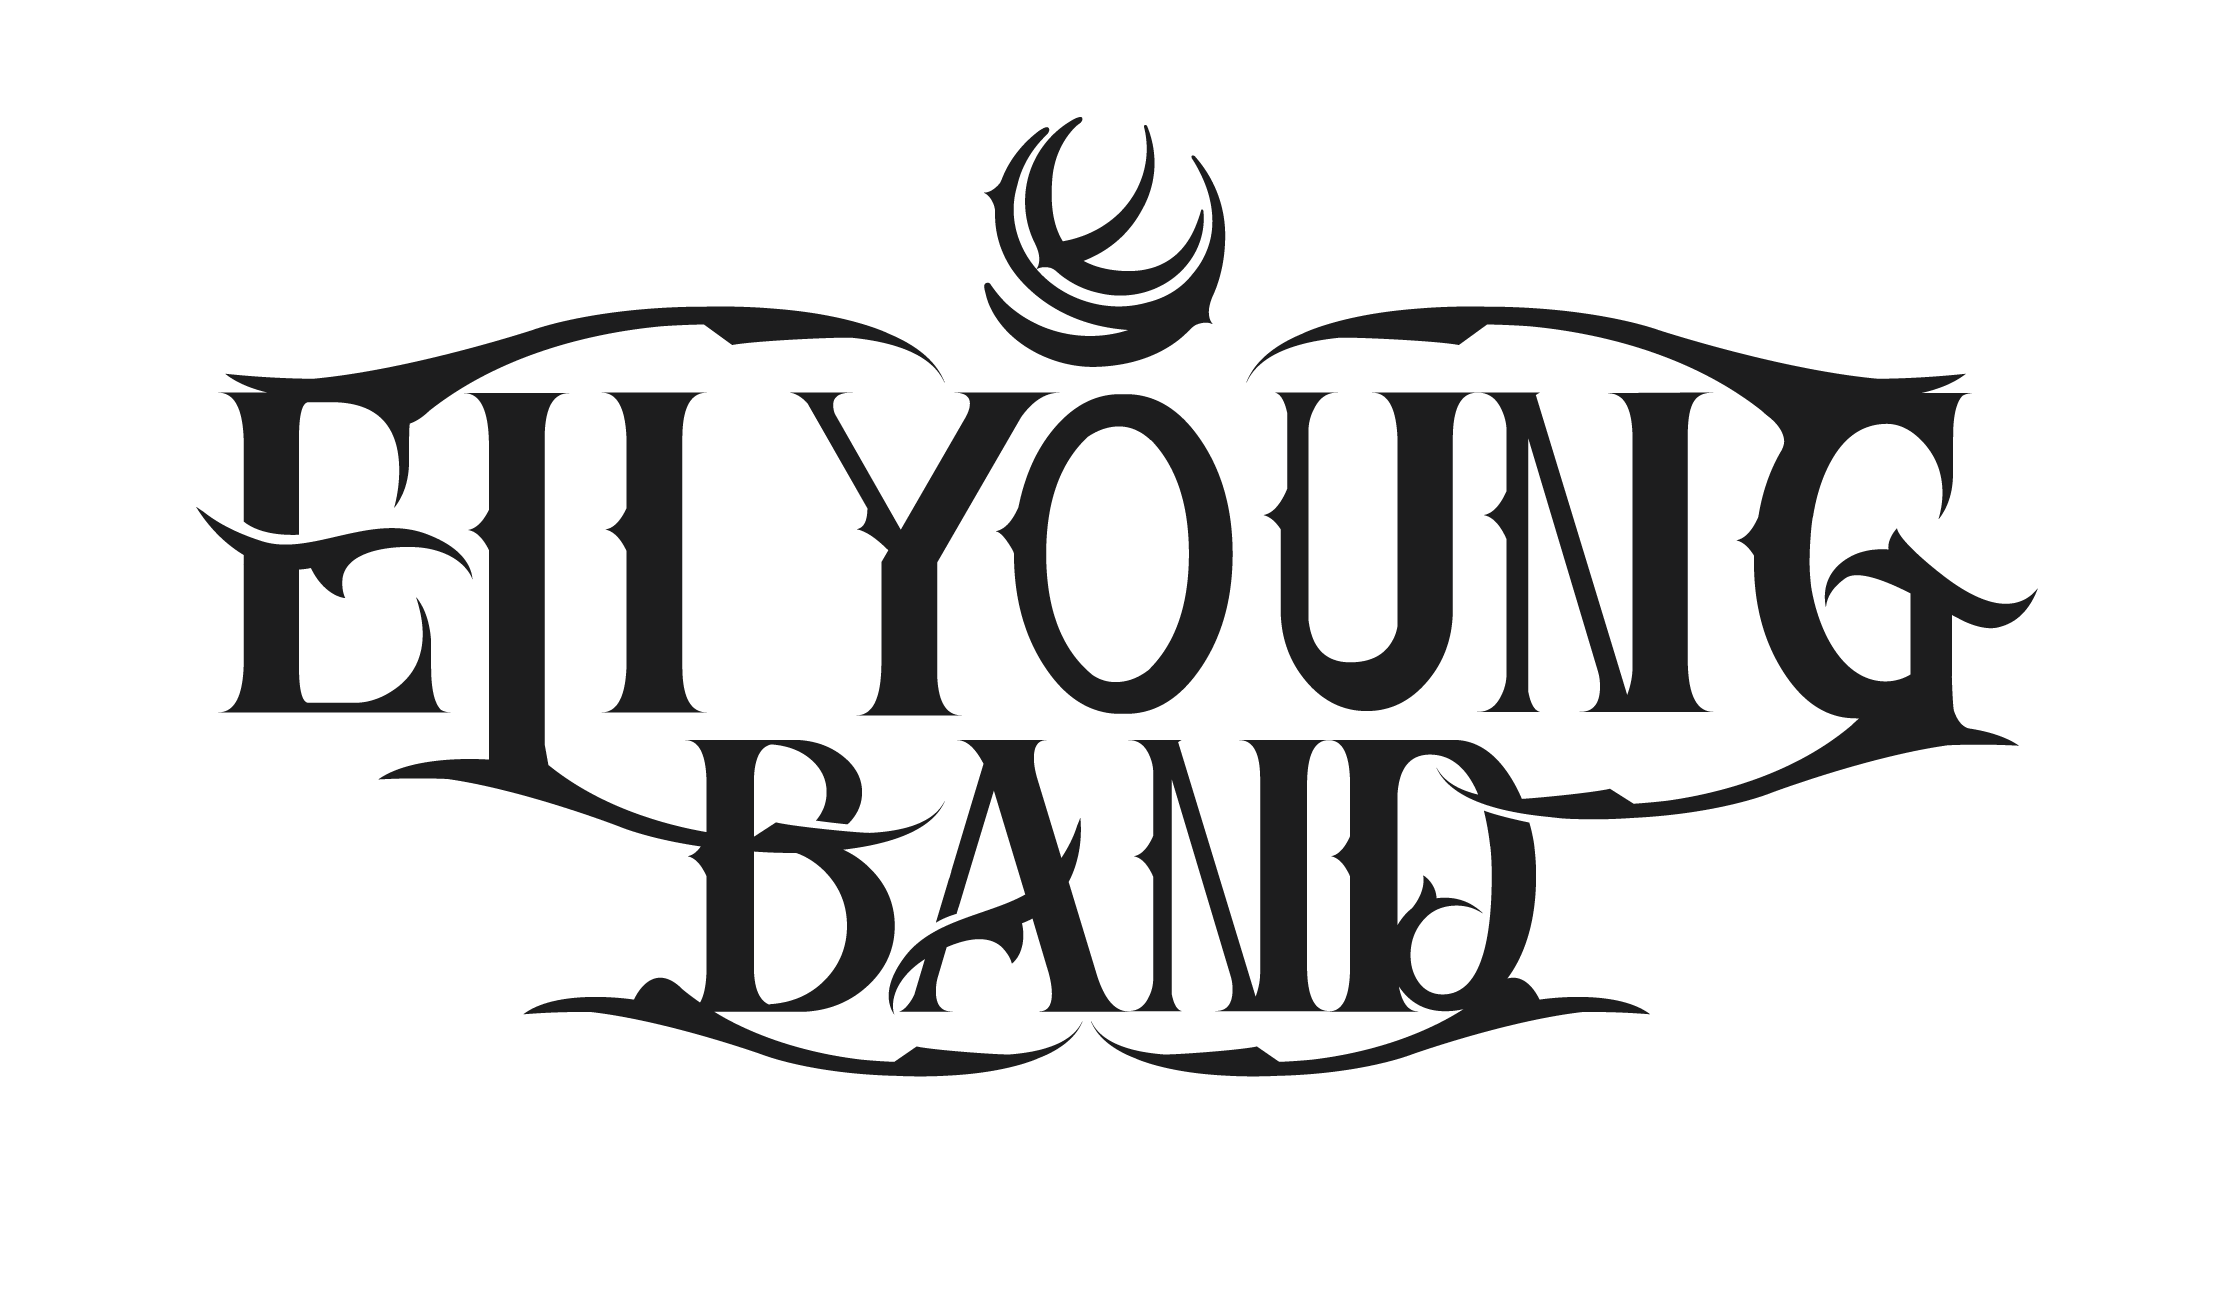 Eli-Young-Band-Official-Logo-2-uvir.png